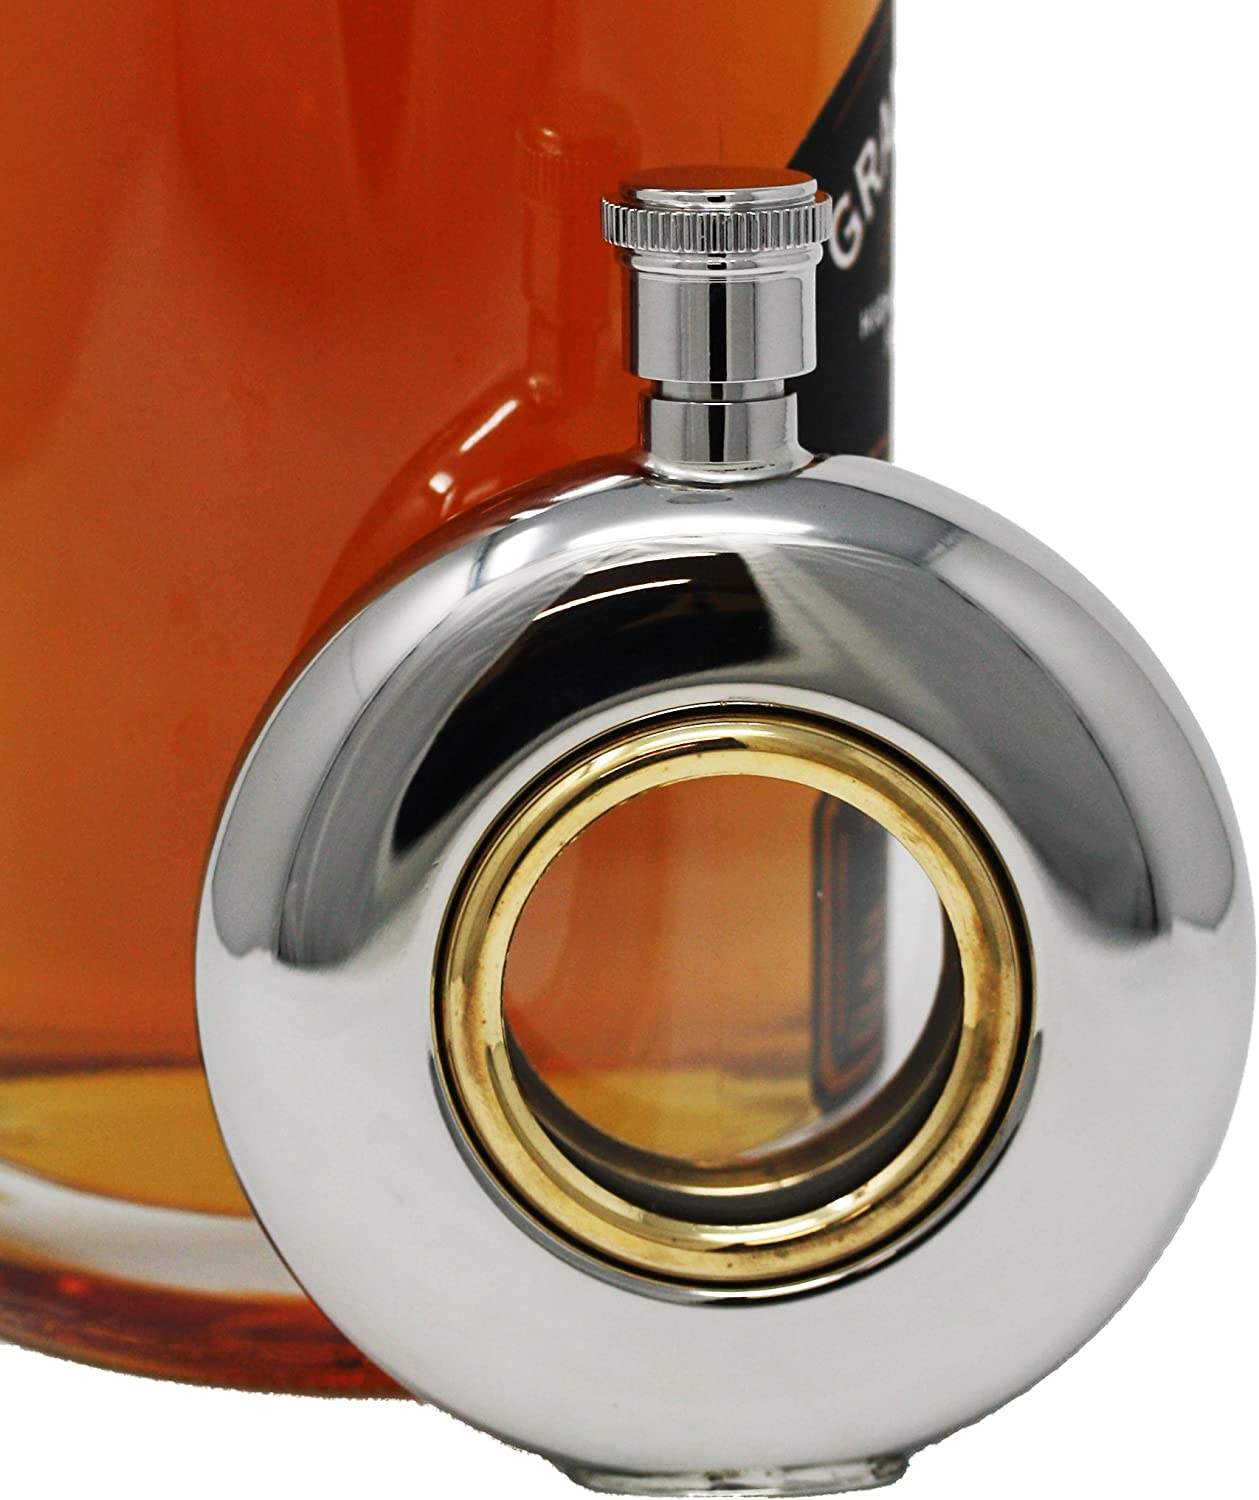 5 oz Discrete Round Pocket Alcohol Liquor Flask With Clear Center (Golden Eye) Made from 304 (18/8) Food Grade Stainless Steel